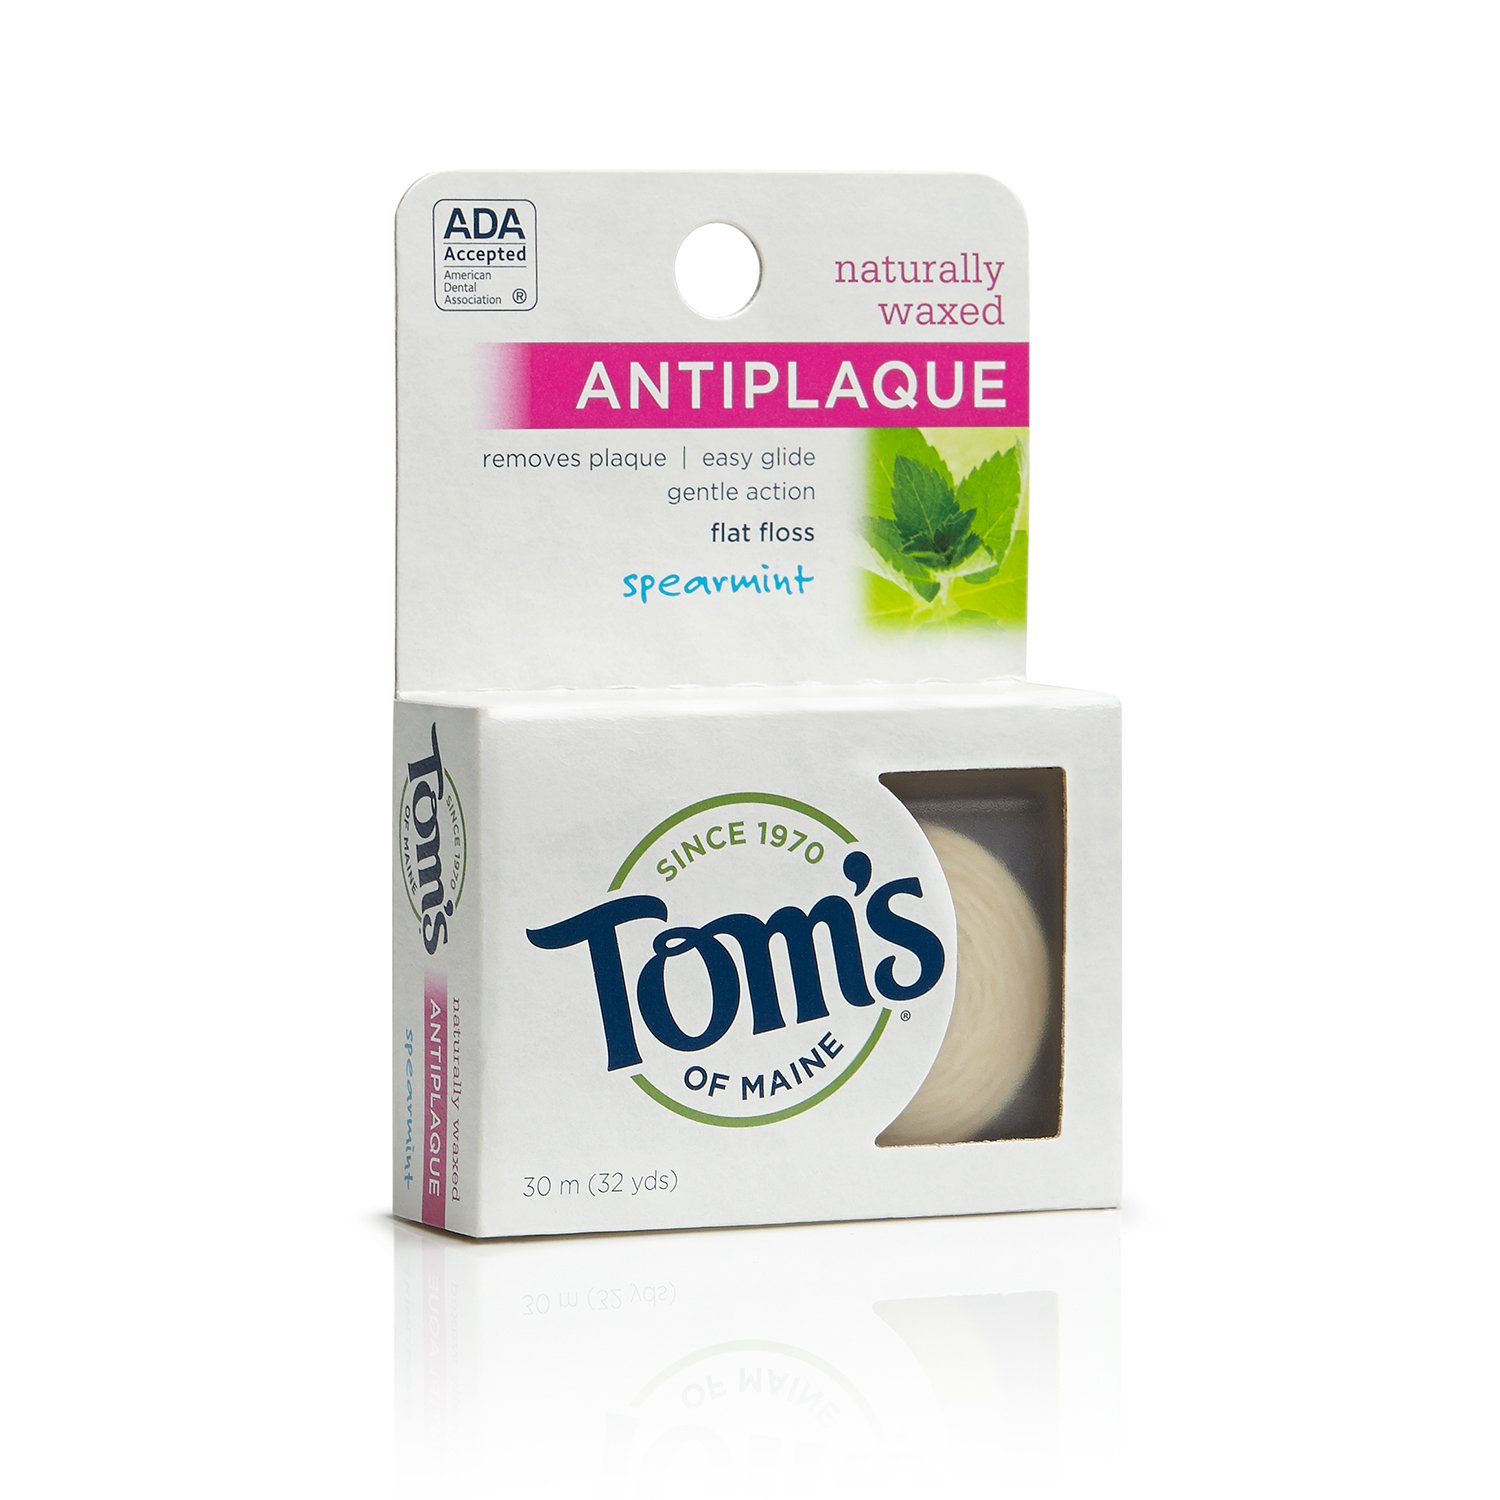 Tom's of Maine 683030 Natural Waxed Antiplaque Flat Floss, Spearmint, 32 yd, 24 Count